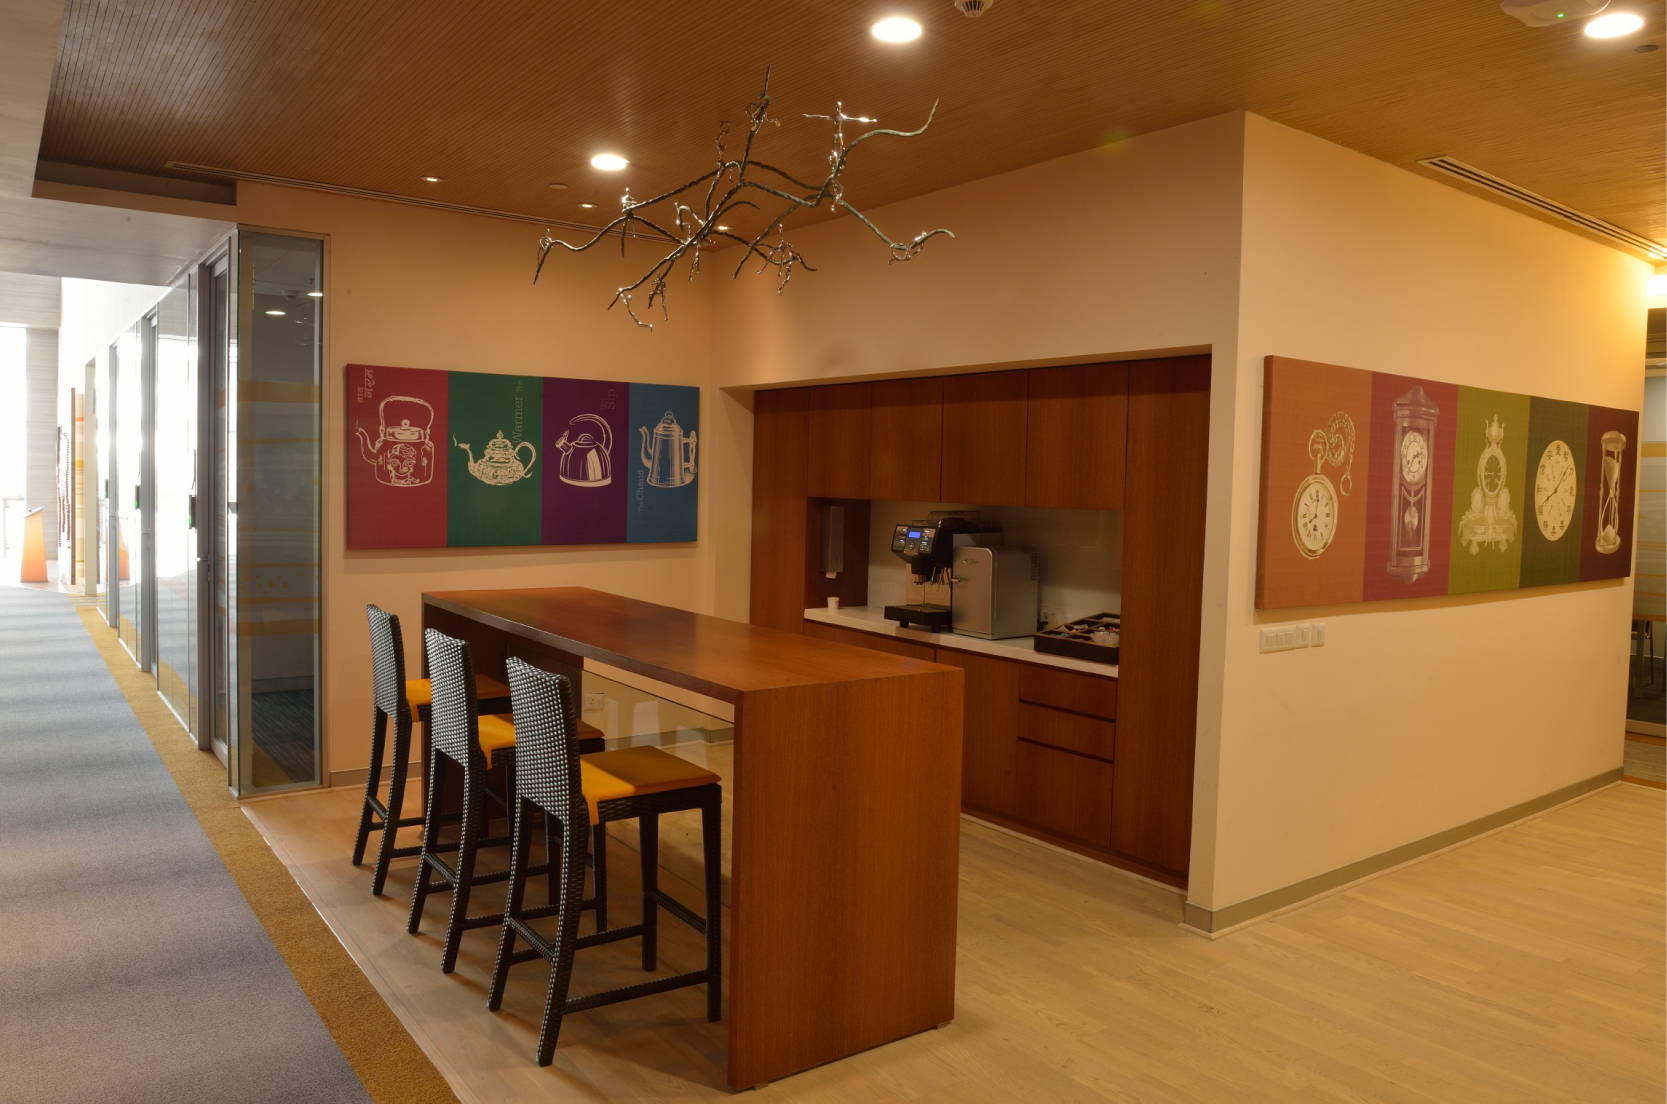 Cairn Corporate Office_Branded Spaces_Elephant Design_5.jpg